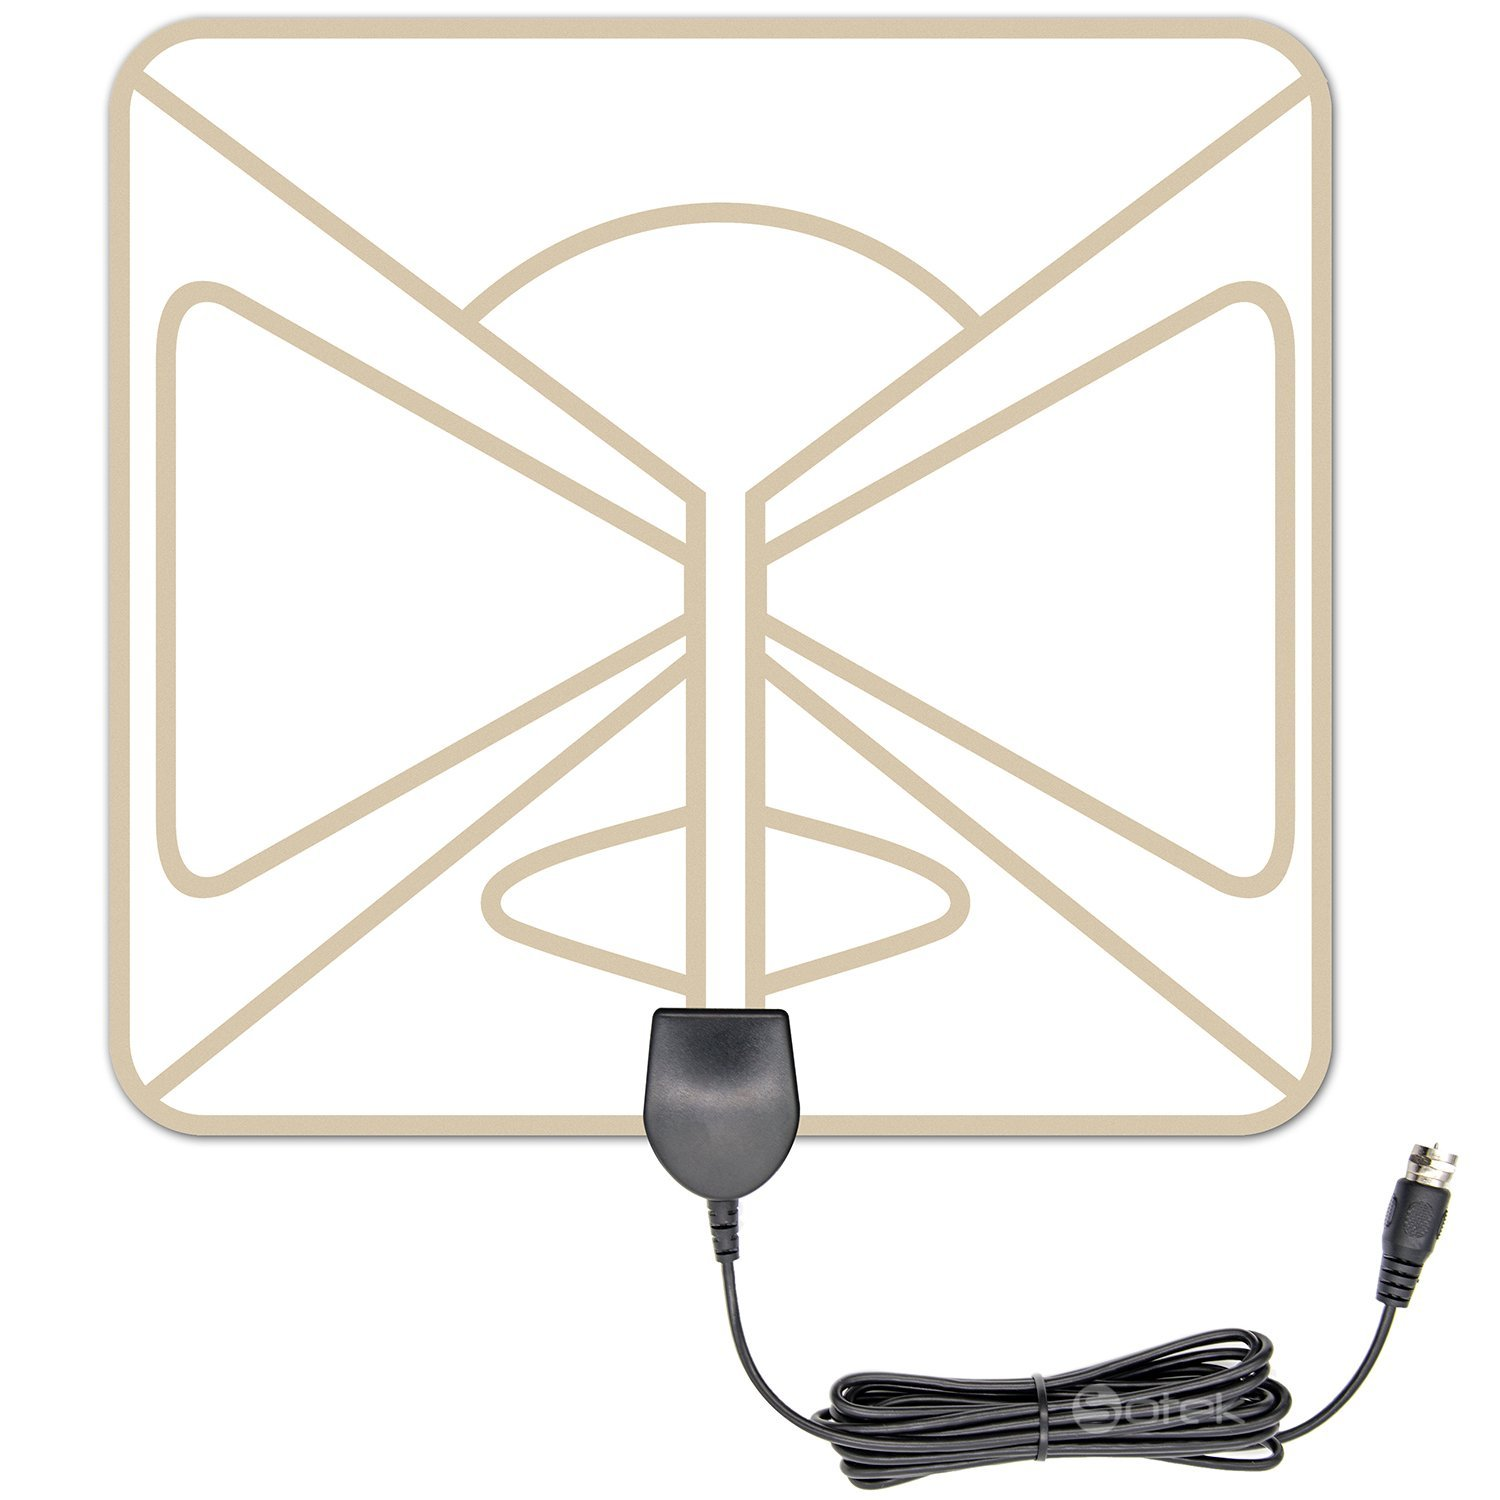 HDTV Antenna Indoor, Sotek HD TV Antenna for Digital TV Indoor 50-80 Miles Long Range with Detachable Amplifier and 10FT High Performance Coax Cable - Black